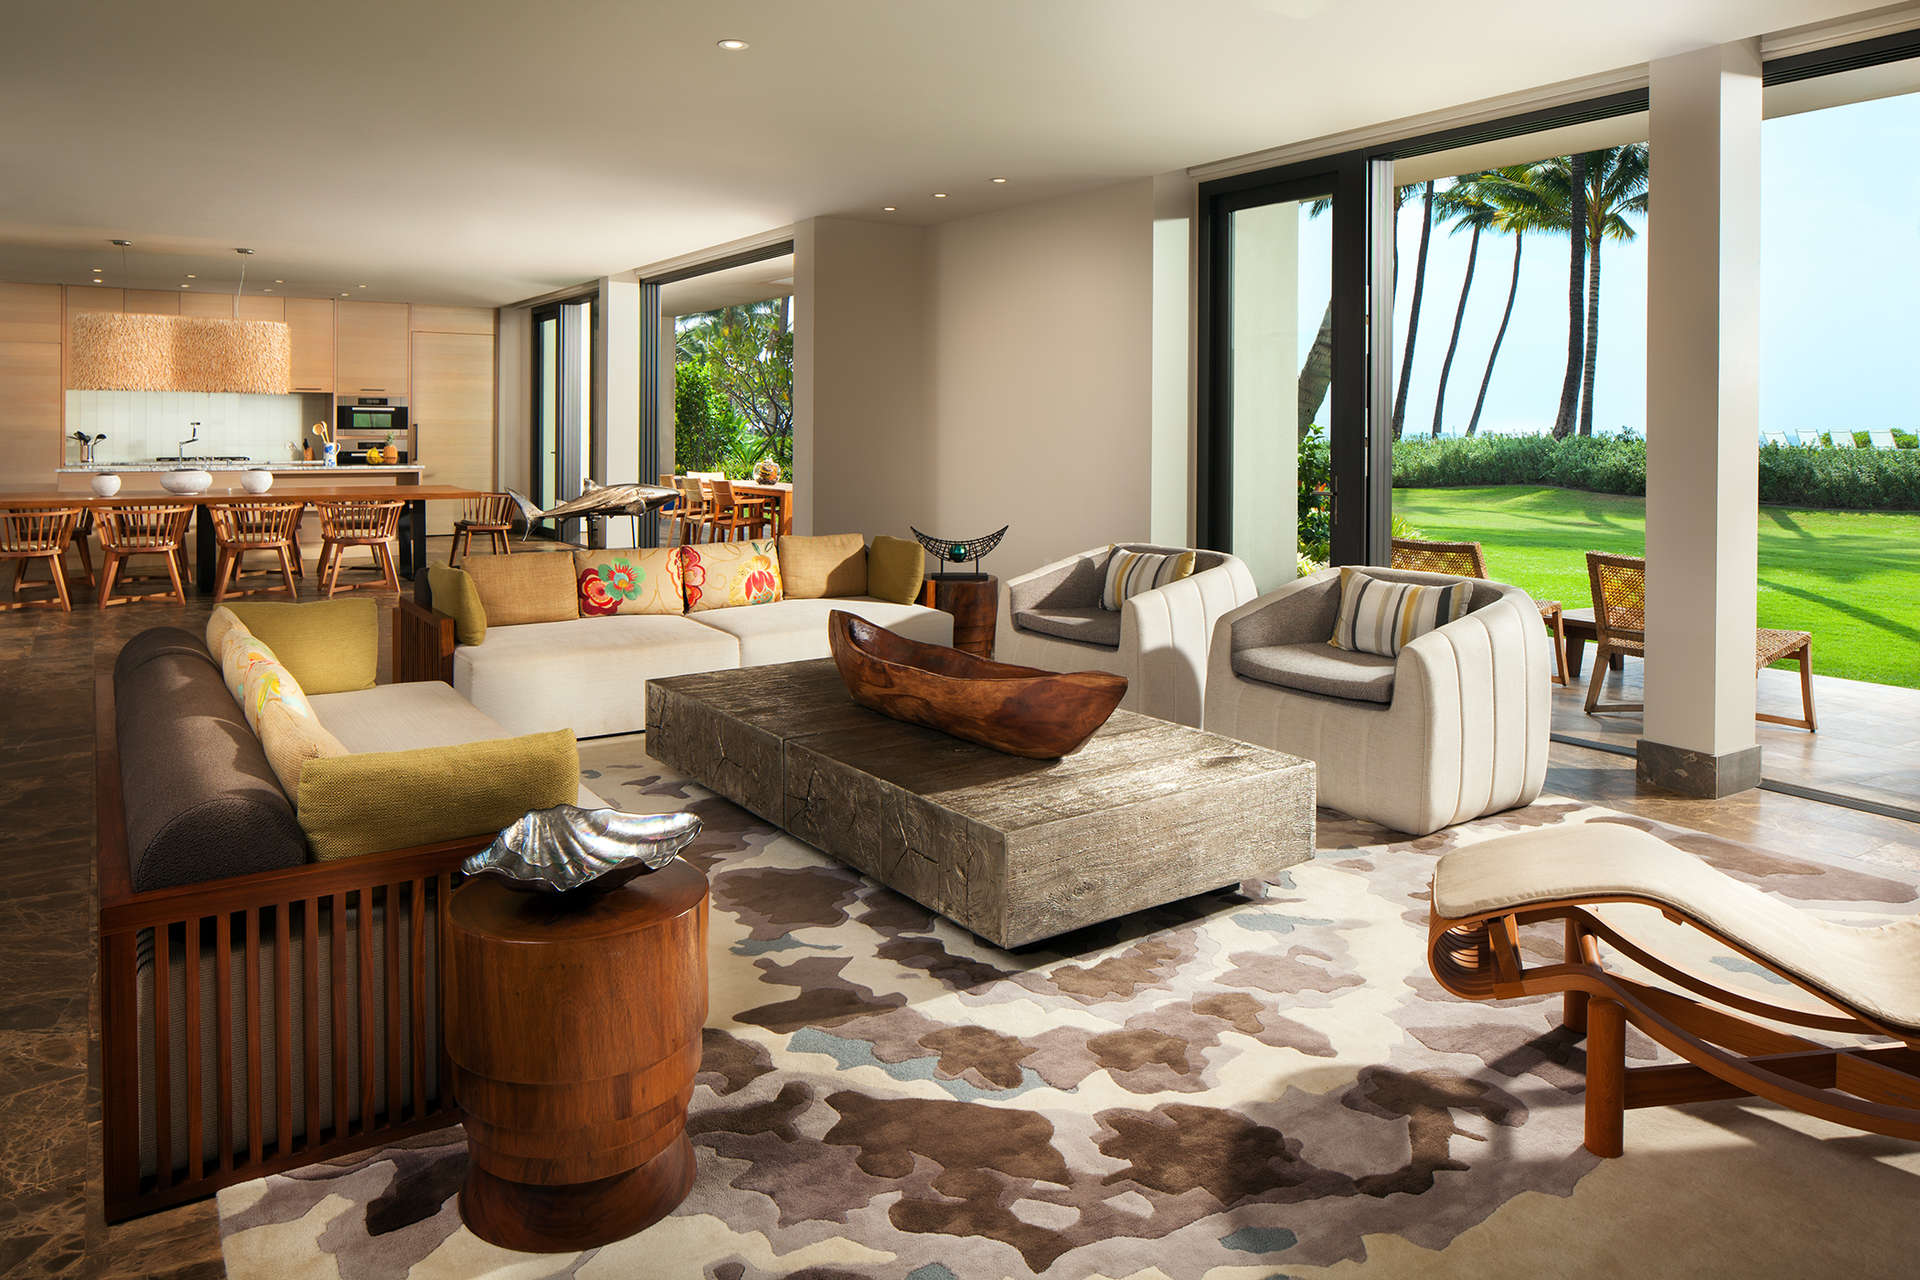 Luxury vacation rentals usa - Hawaii - Maui - Andaz maui wailea resort - Oceanfront Villa | 4 Bedrooms - Image 1/5